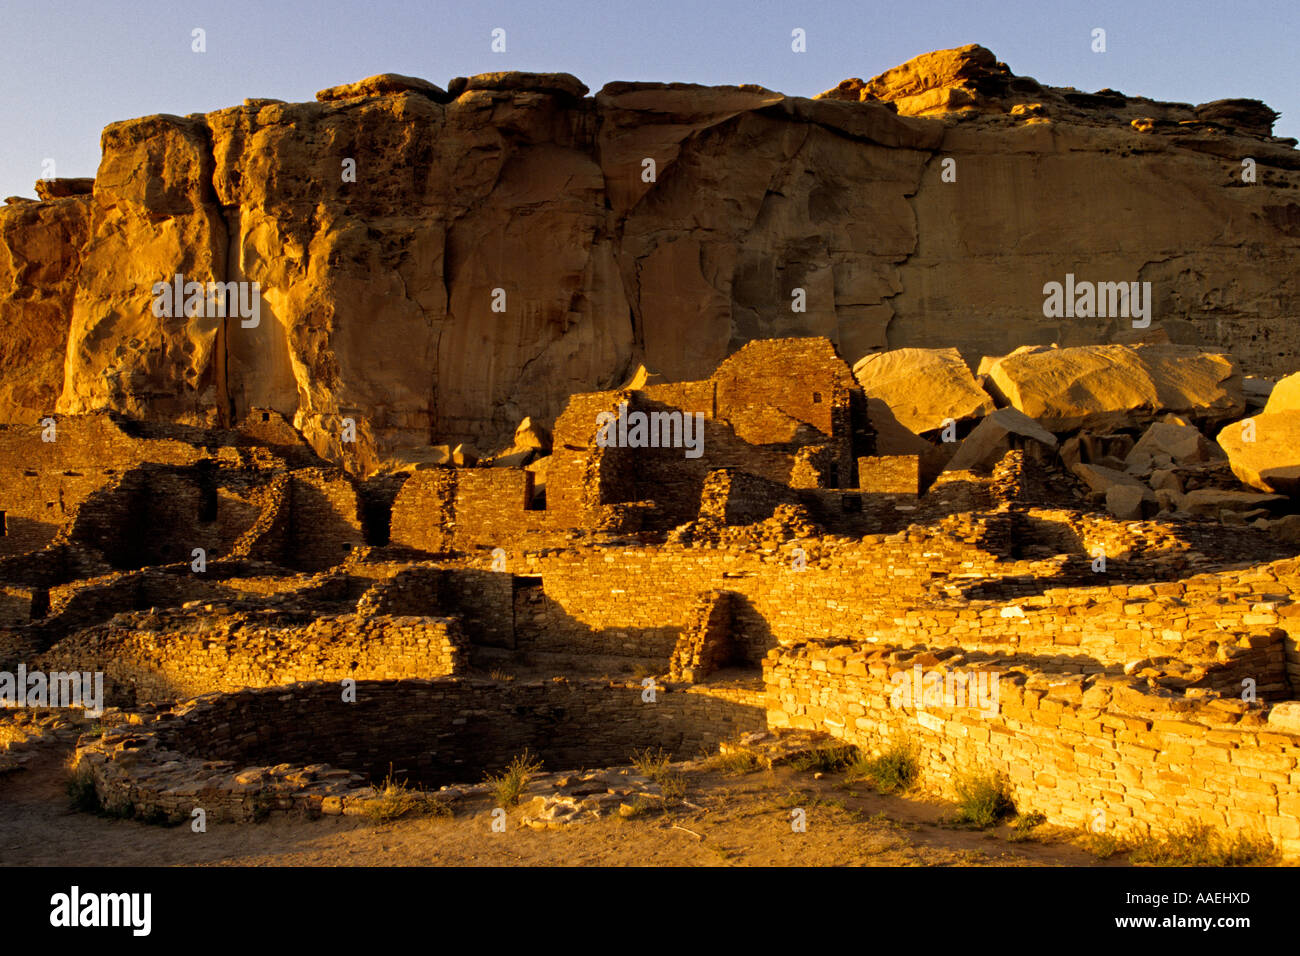 Pueblo Bonito glows in afternoon sun in Chaco Culture National Historical Park, Chaco Canyon, New Mexico USA - Stock Image